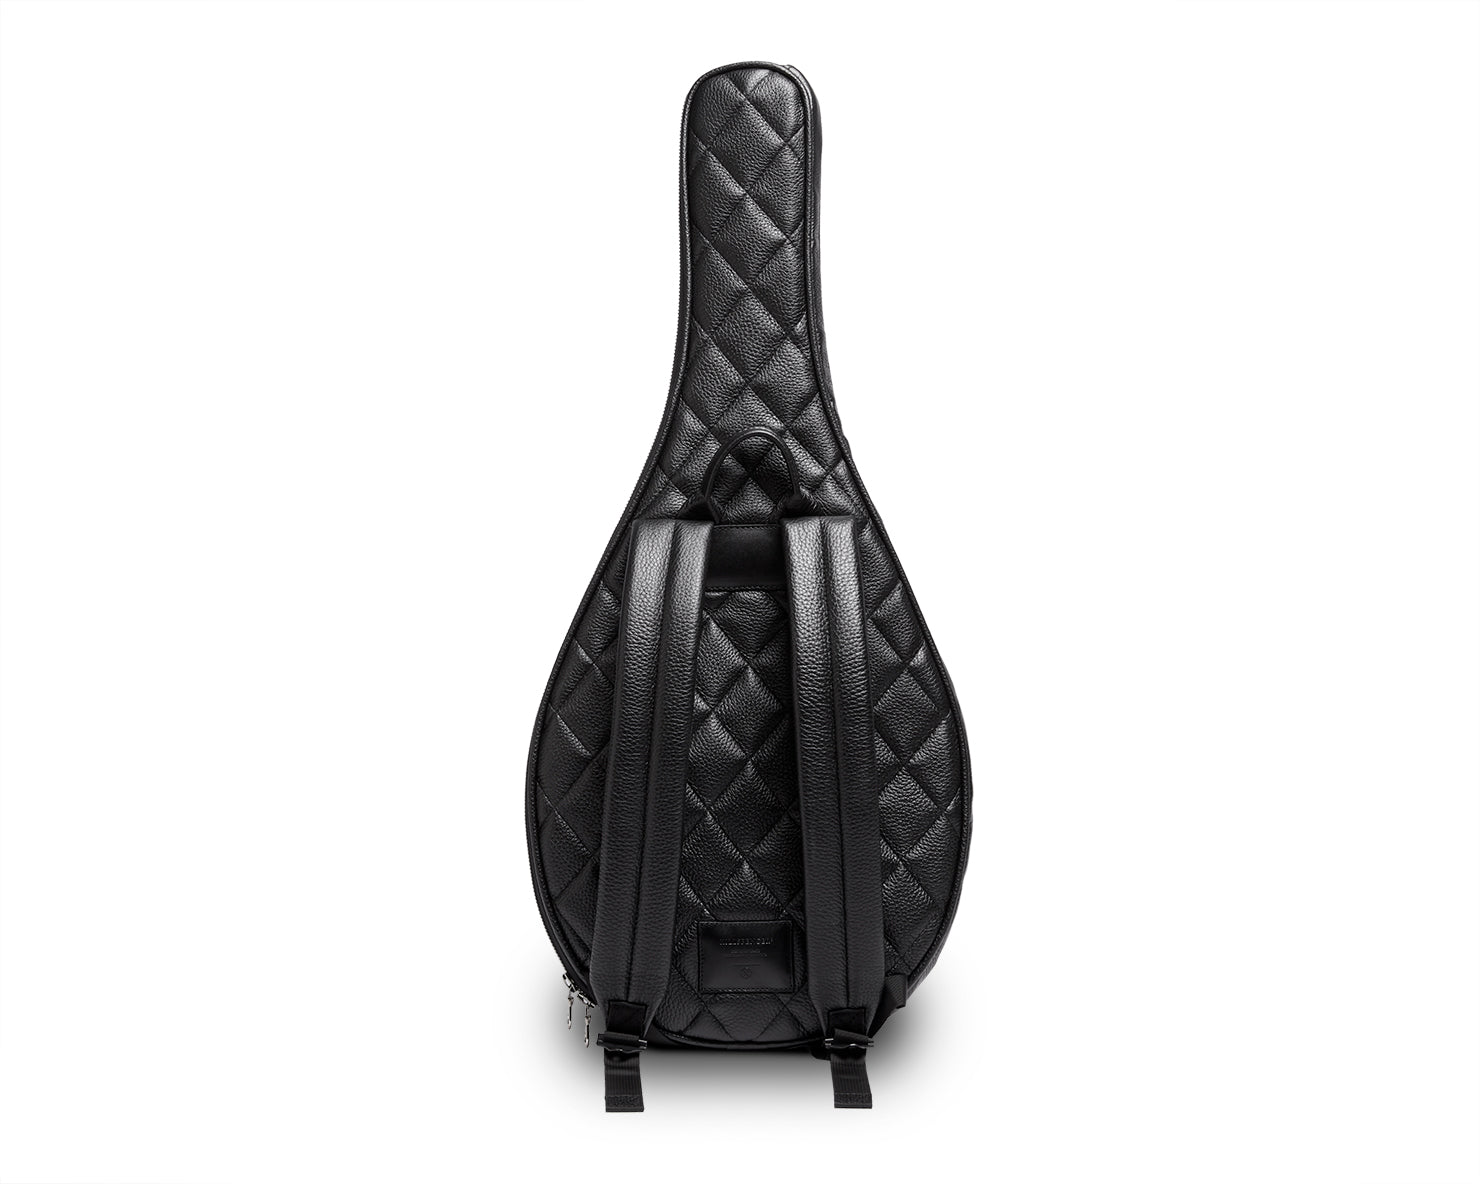 TENNIS RACKET BACKPACK | KILLSPENCER® - Black Quilted Leather